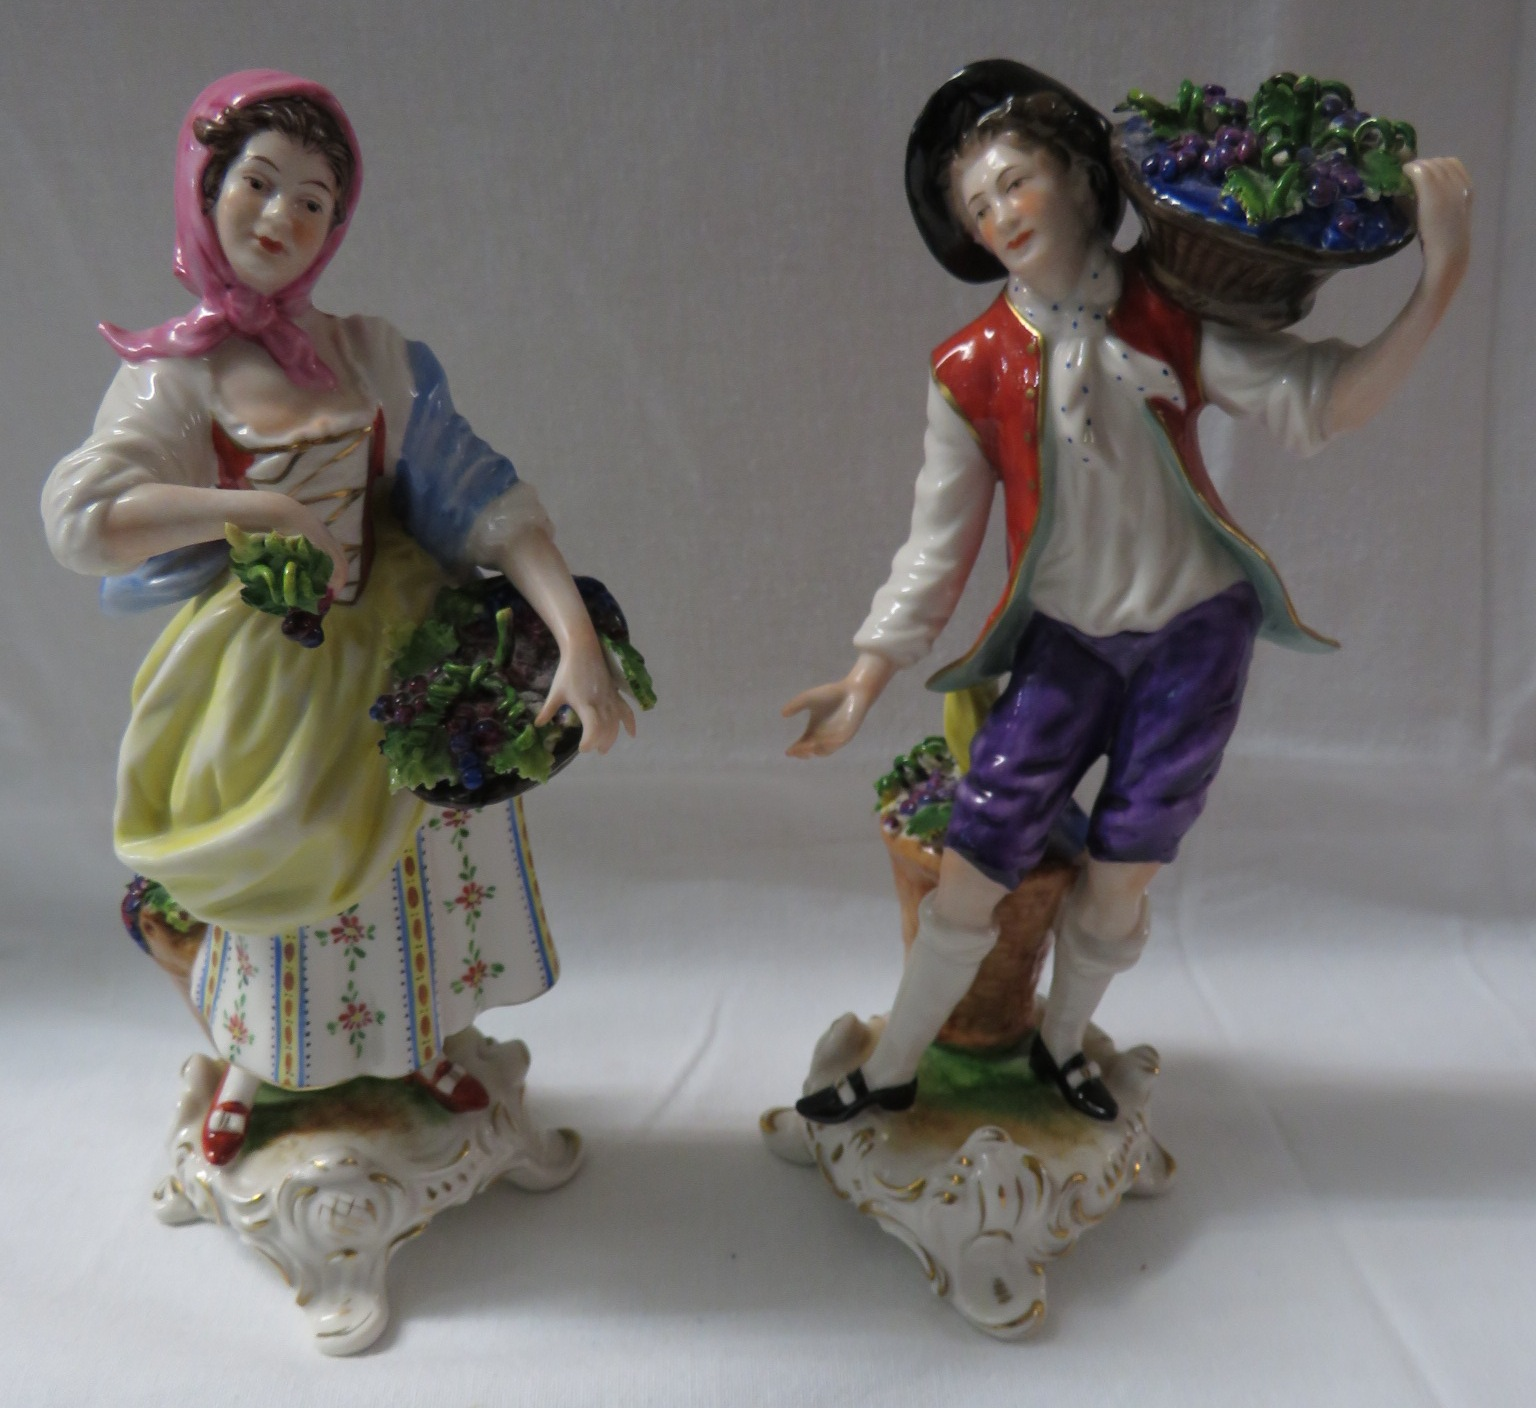 Lot 26A - A matched pair of Rudolf Kammer porcelain figures of grape pickers, man and woman, each on